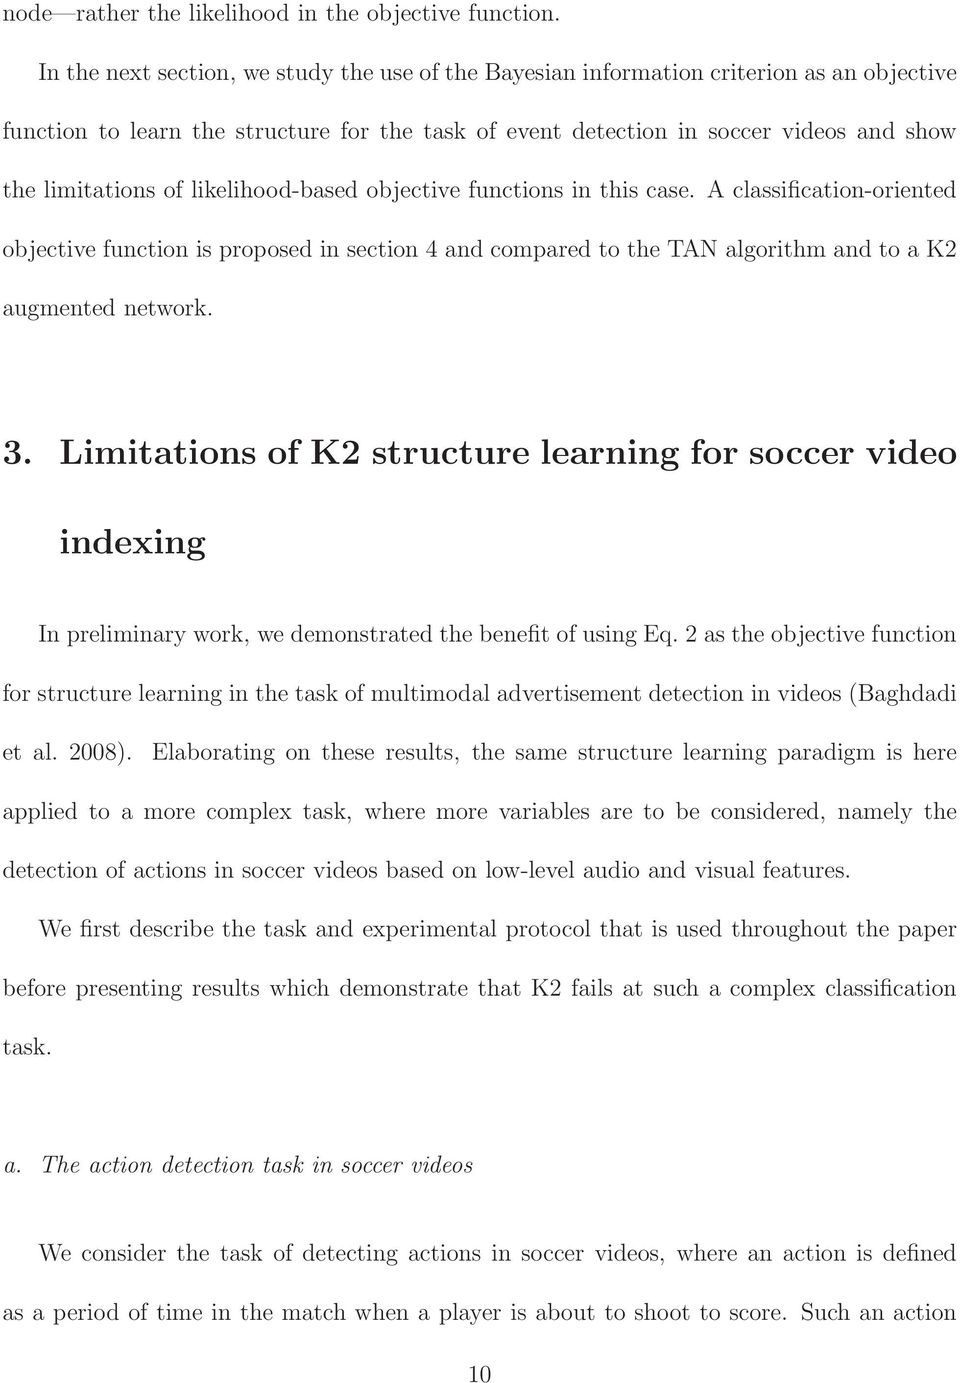 of likelihood-based objective functions in this case. A classification-oriented objective function is proposed in section 4 and compared to the TAN algorithm and to a K2 augmented network. 3.